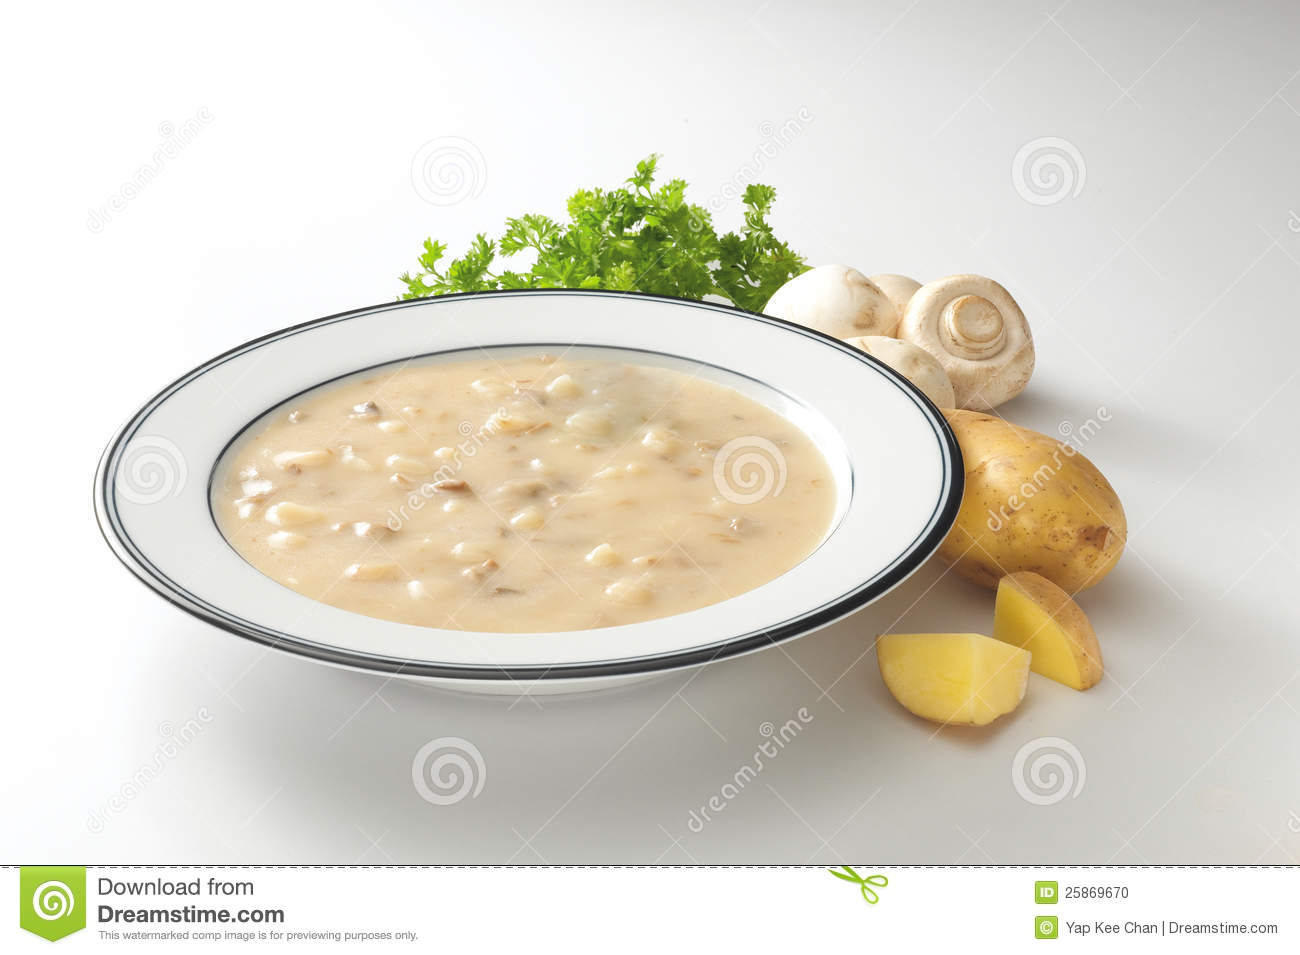 Cream Mushroom Soup Stock Photos, Images, & Pictures.